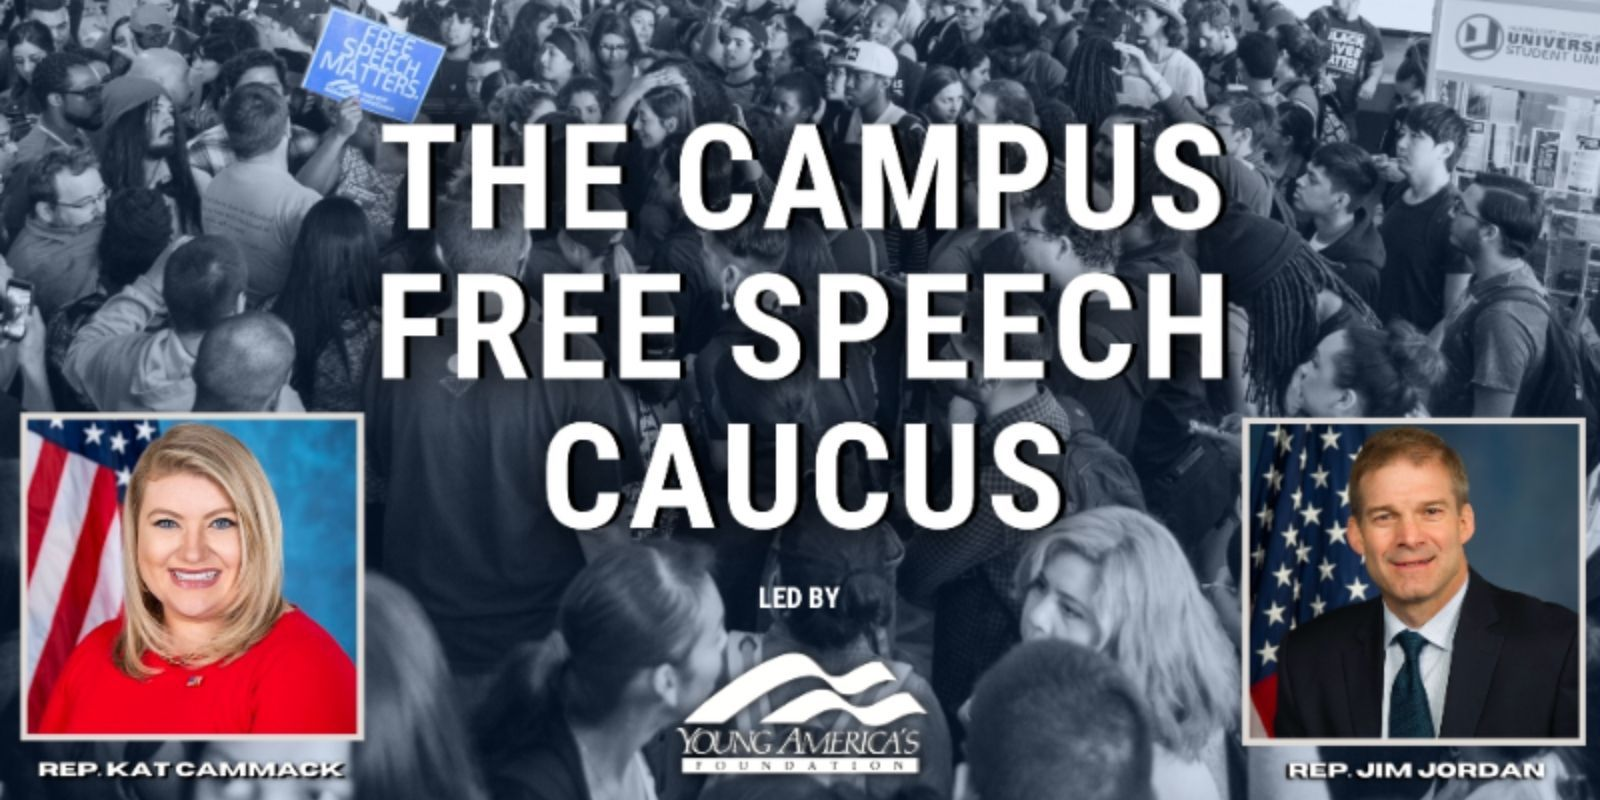 House GOP teams with YAF on 'Free Speech Caucus' to fight for 1A rights on college campuses